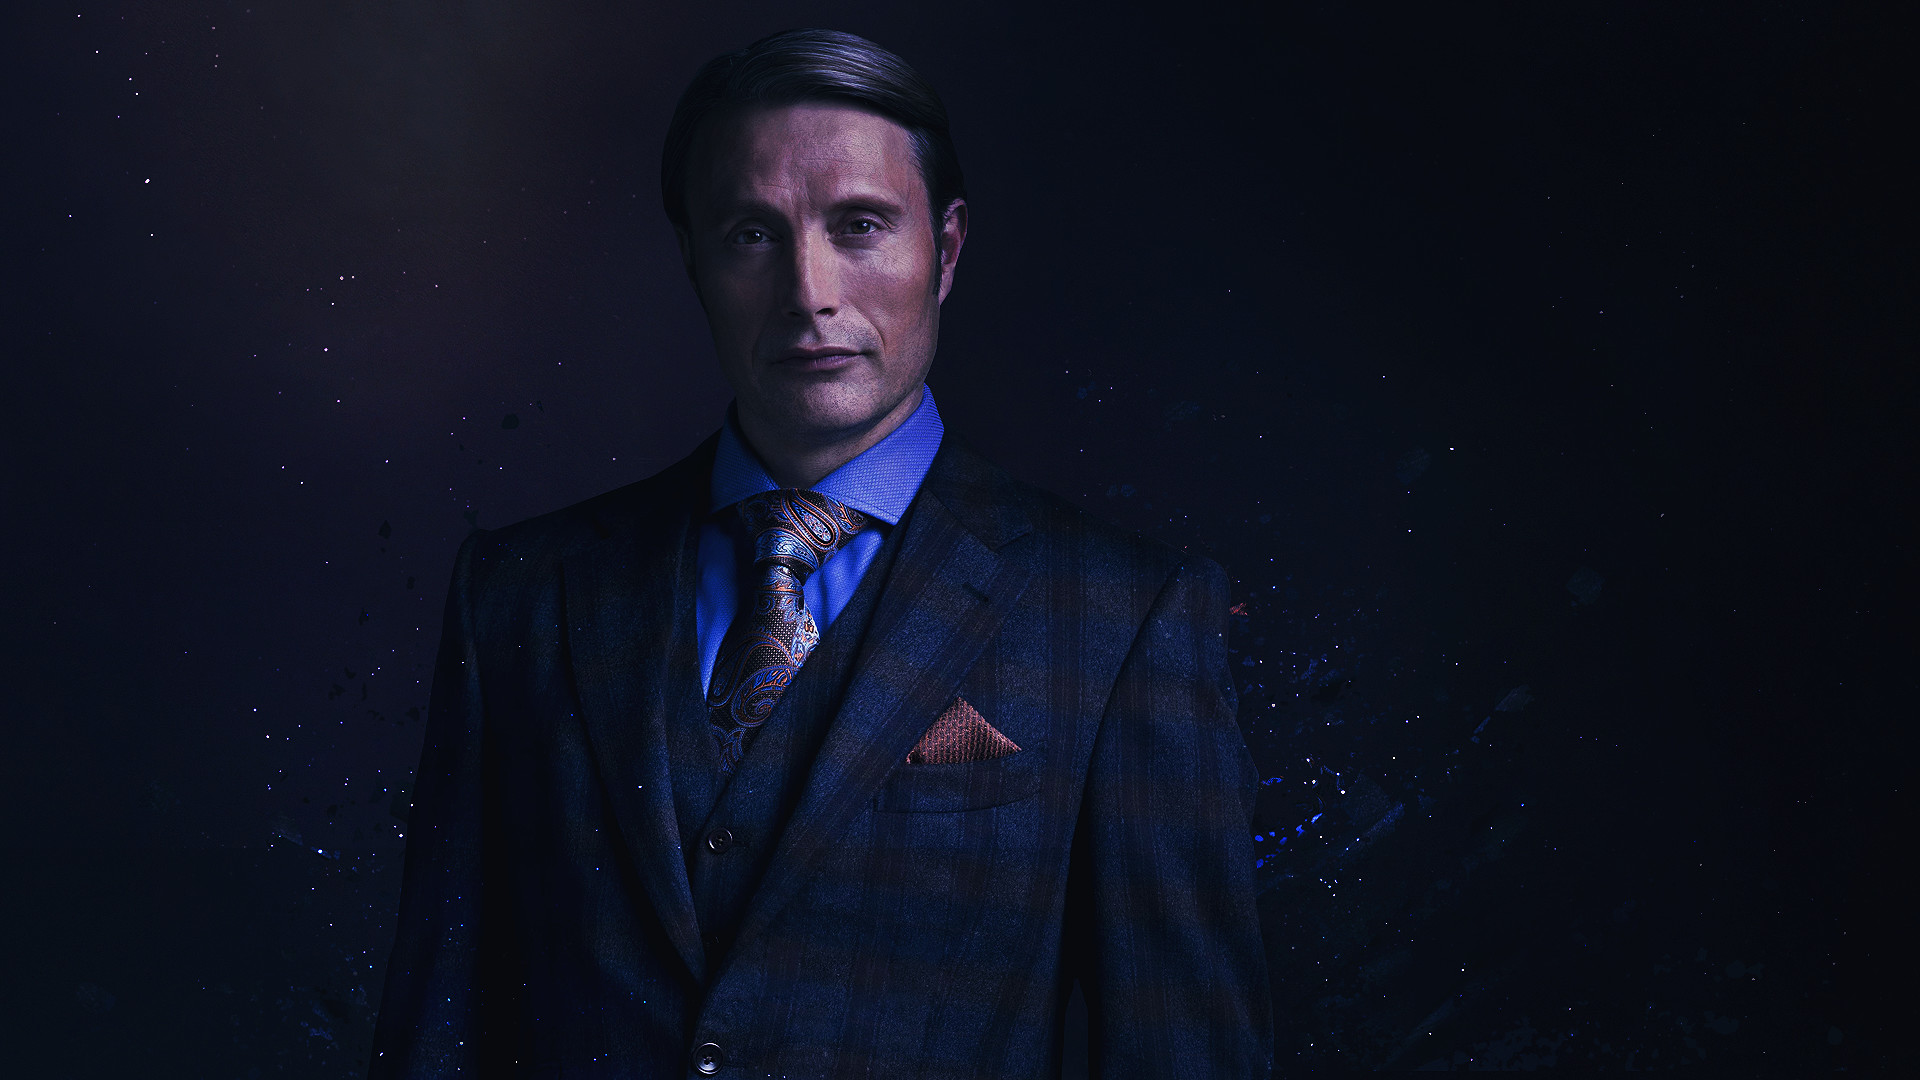 Mads Mikkelsen Hannibal Wallpaper 71 images 1920x1080